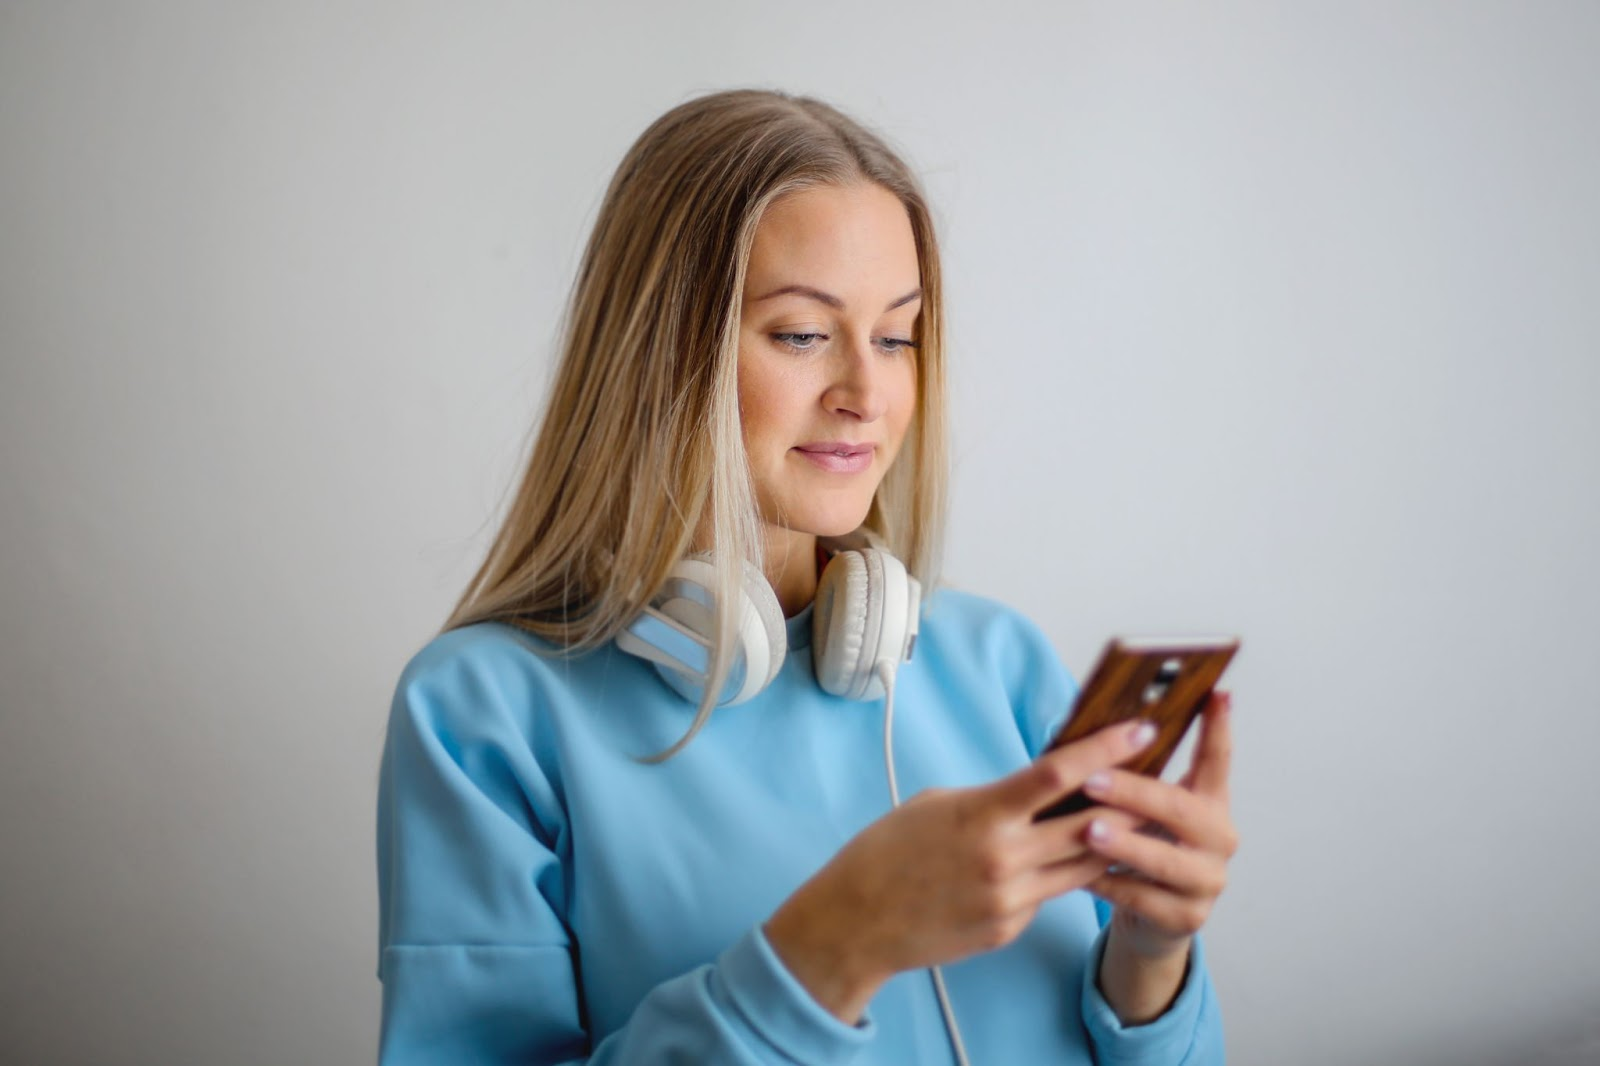 A woman listening to music on her phone -Spotify Tips and Tricks